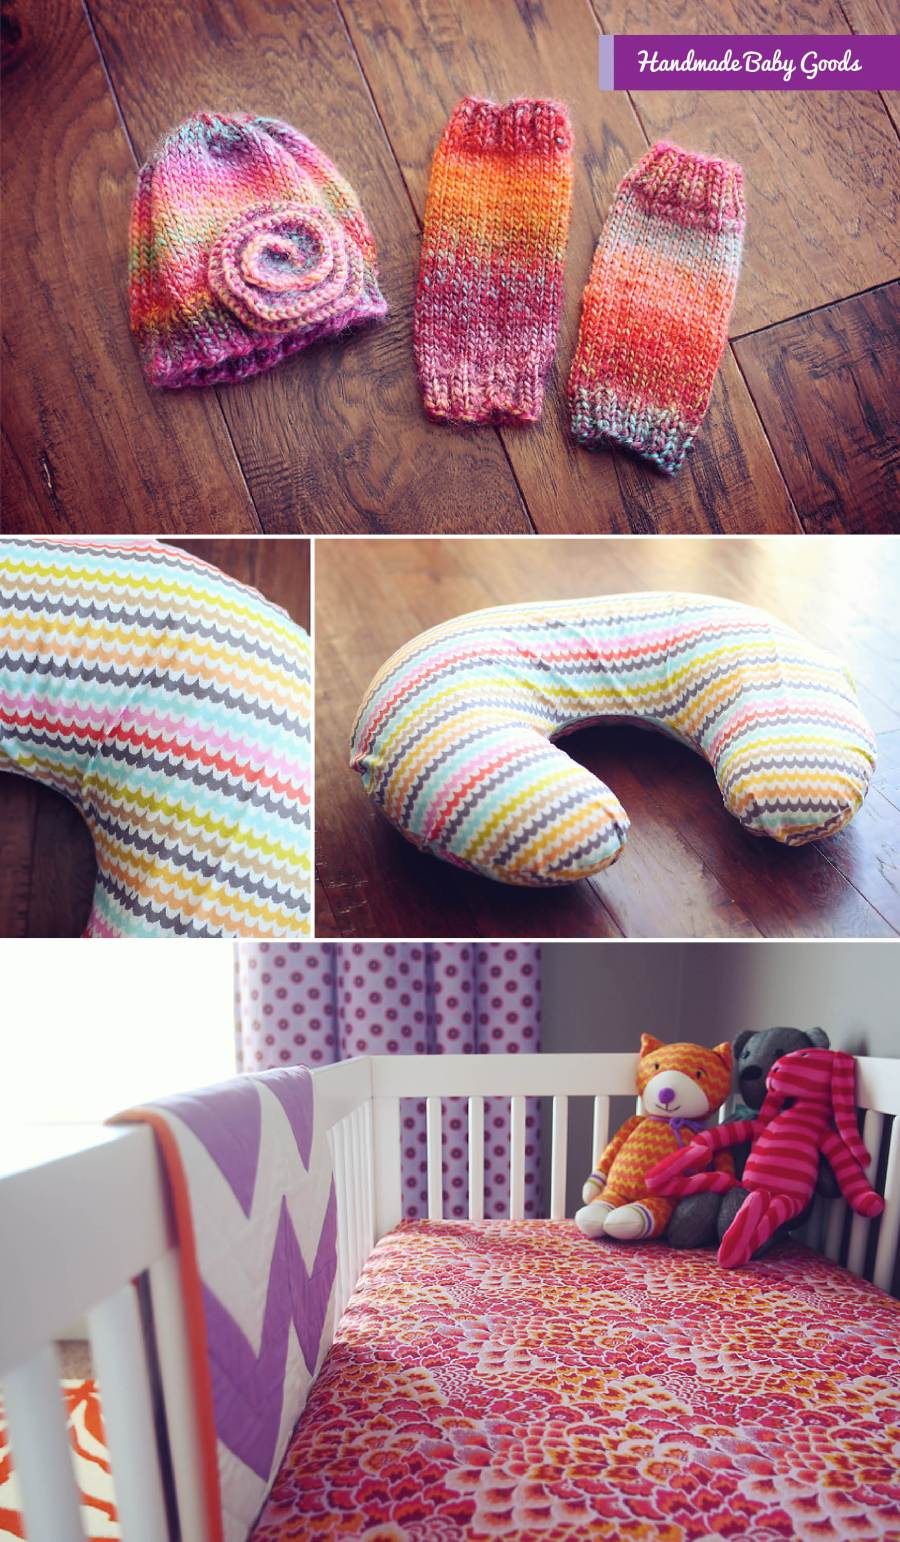 MOM HOMEMADE BABY GOODS